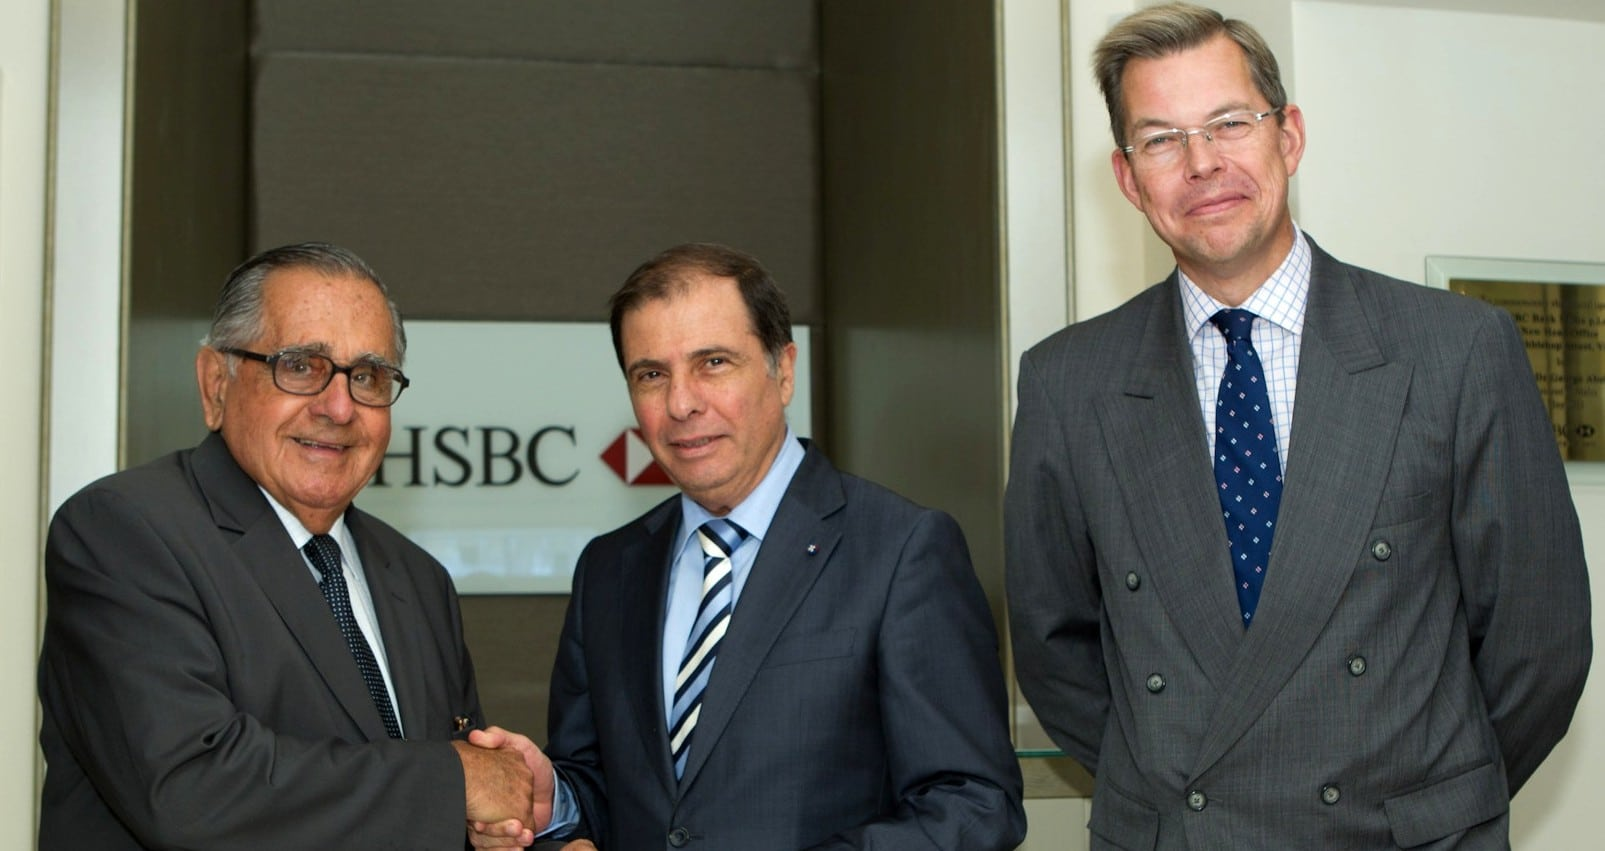 69 - HSBC - Visit by The President of Malta